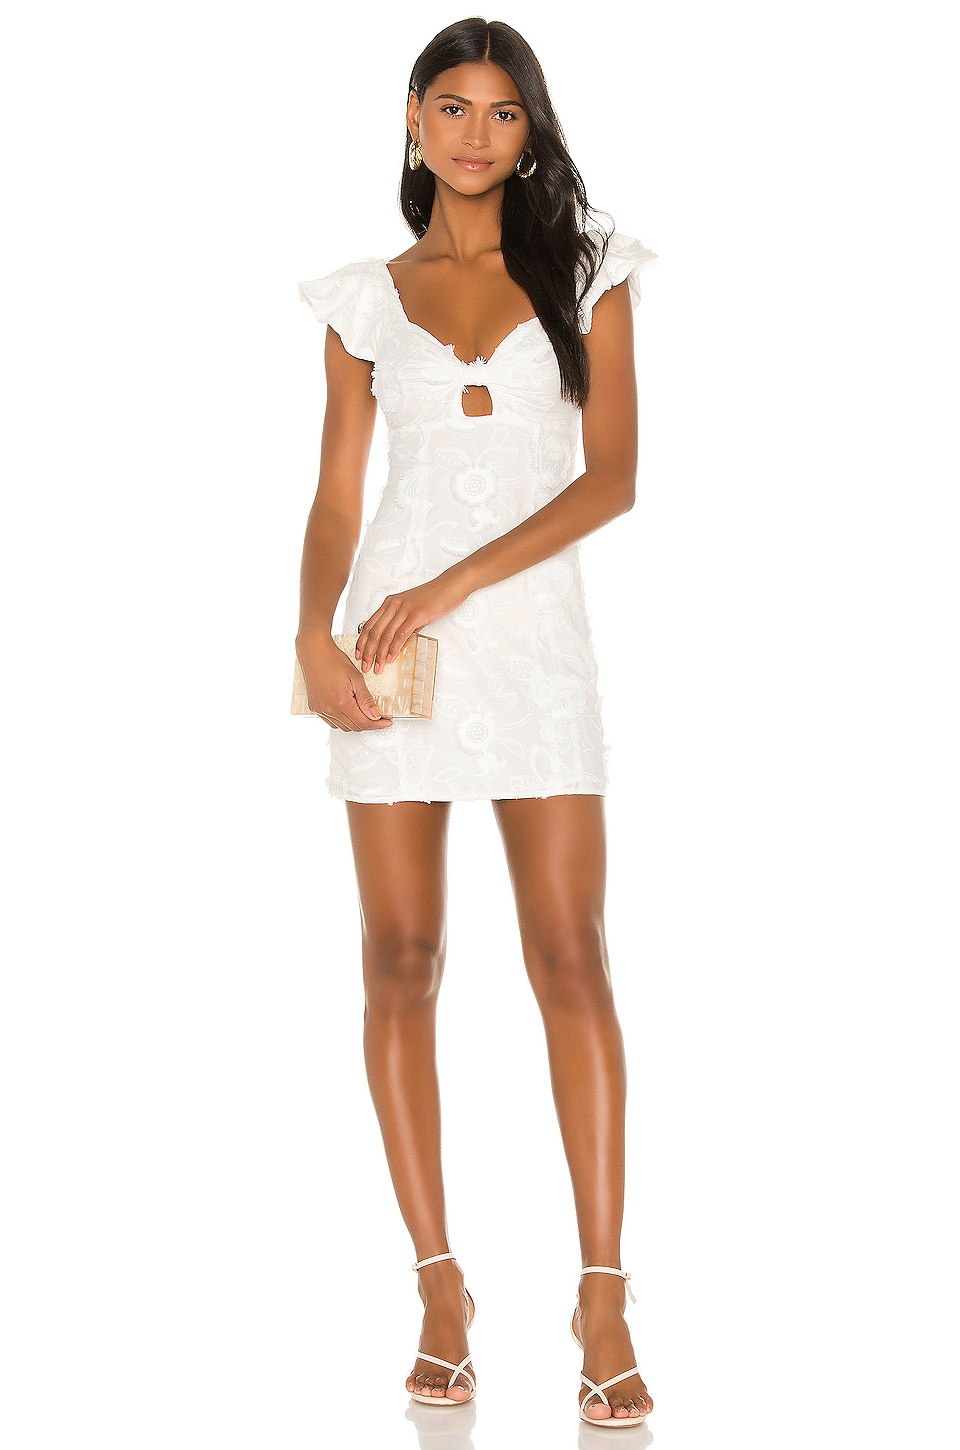 Carina Mini Dress             Camila Coelho                                                                                                       CA$ 281.52 7